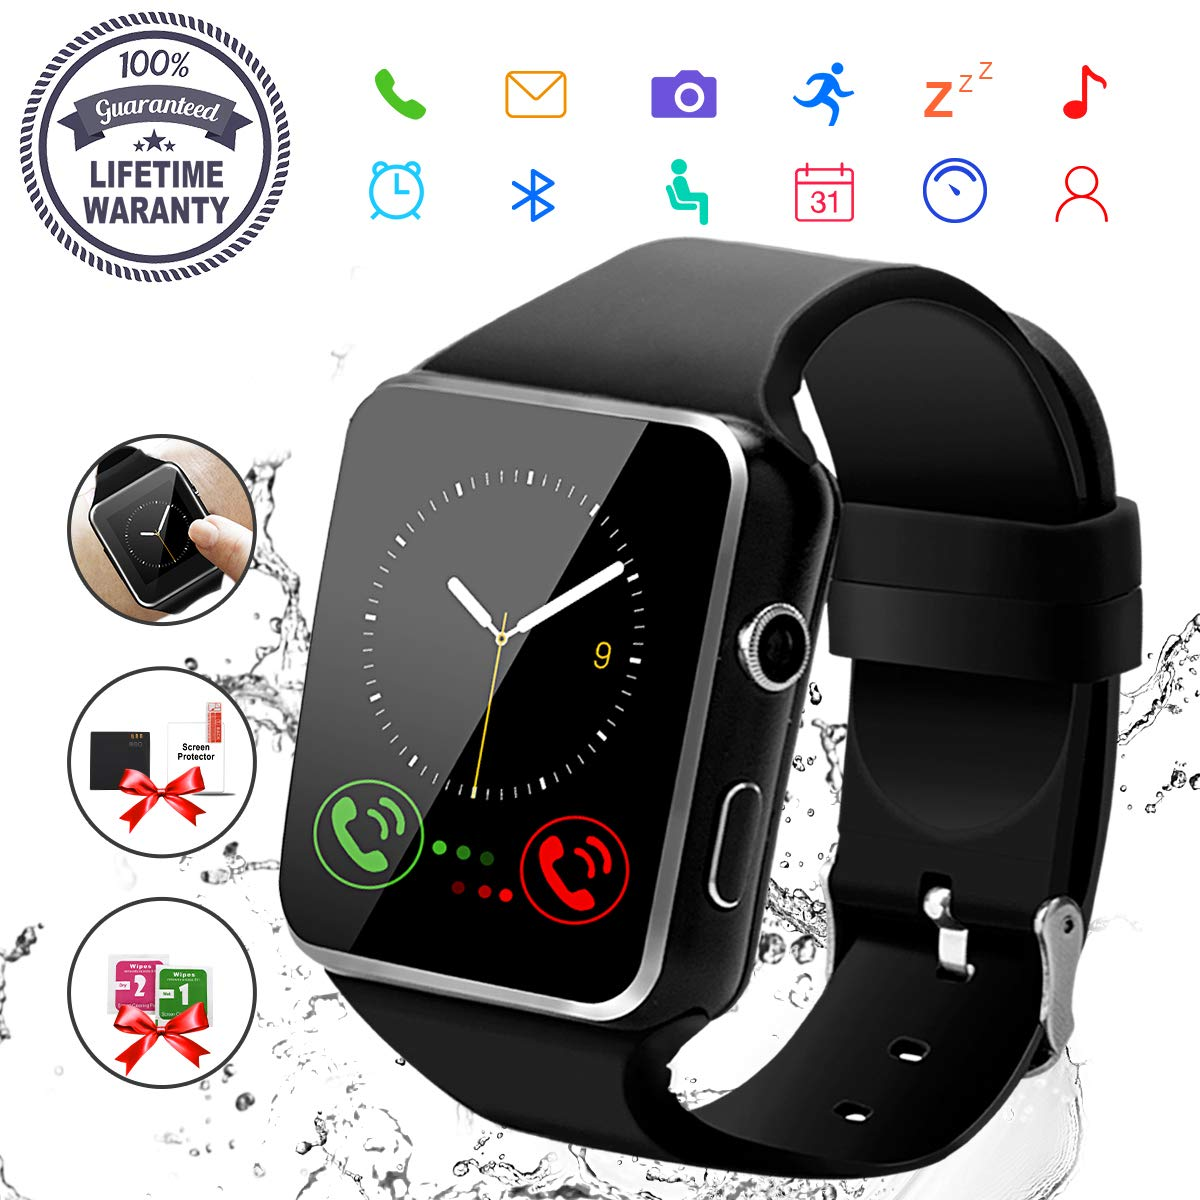 Smart Watch,Bluetooth Smartwatch Touch Screen Wrist Watch with Camera/SIM Card Slot,Waterproof Phone Smart Watch Sports Fitness Tracker Compatible Android ...